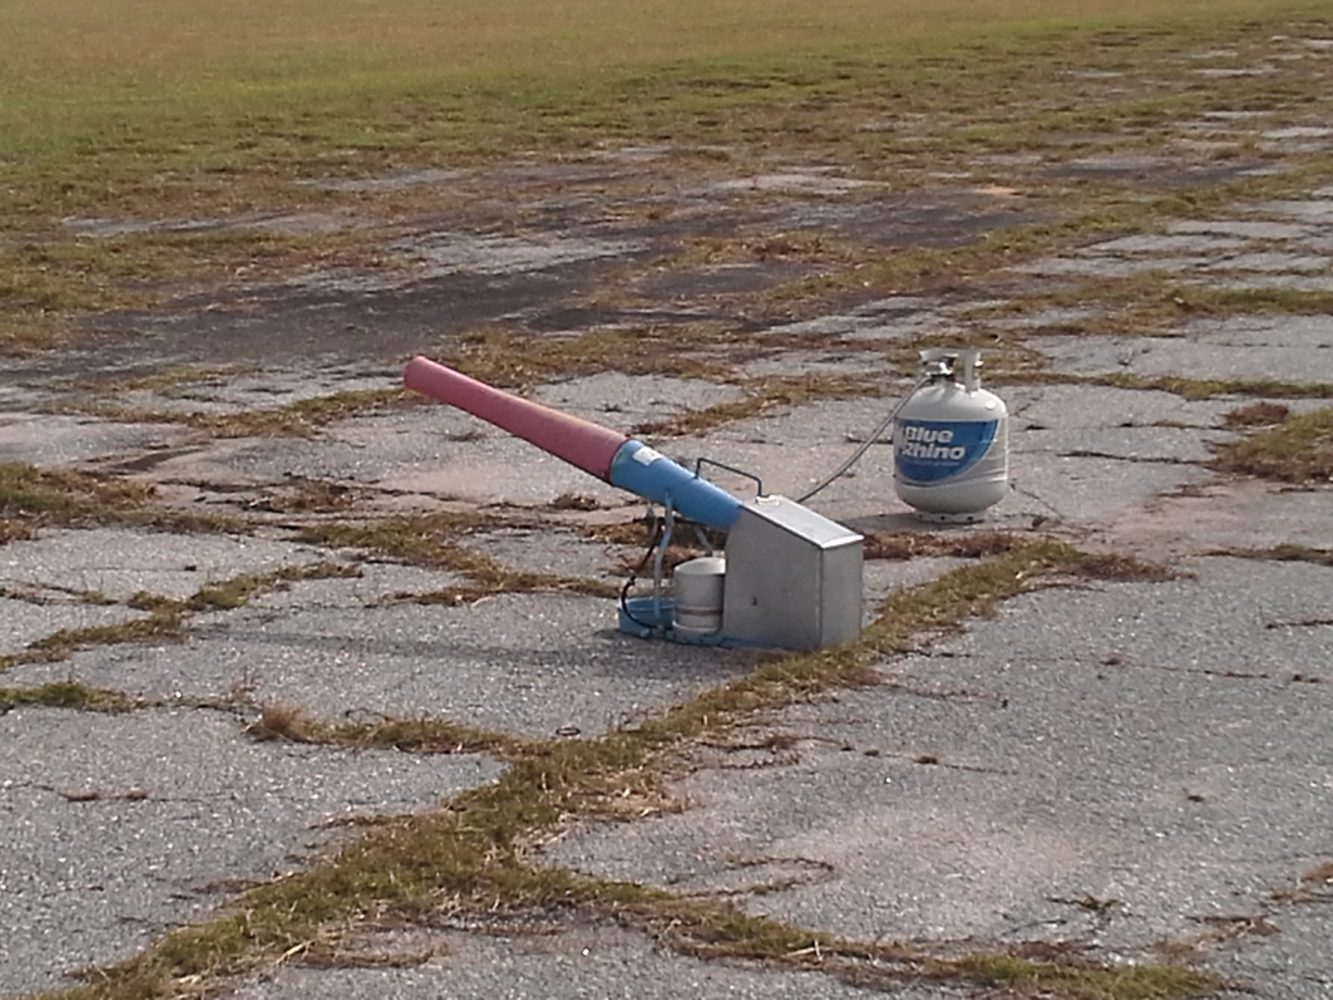 The Gainesville Regional Airport has air cannons that will fire off every 20 minutes to keep vultures away. They will move the cannons around the runway throughout the day as needed.